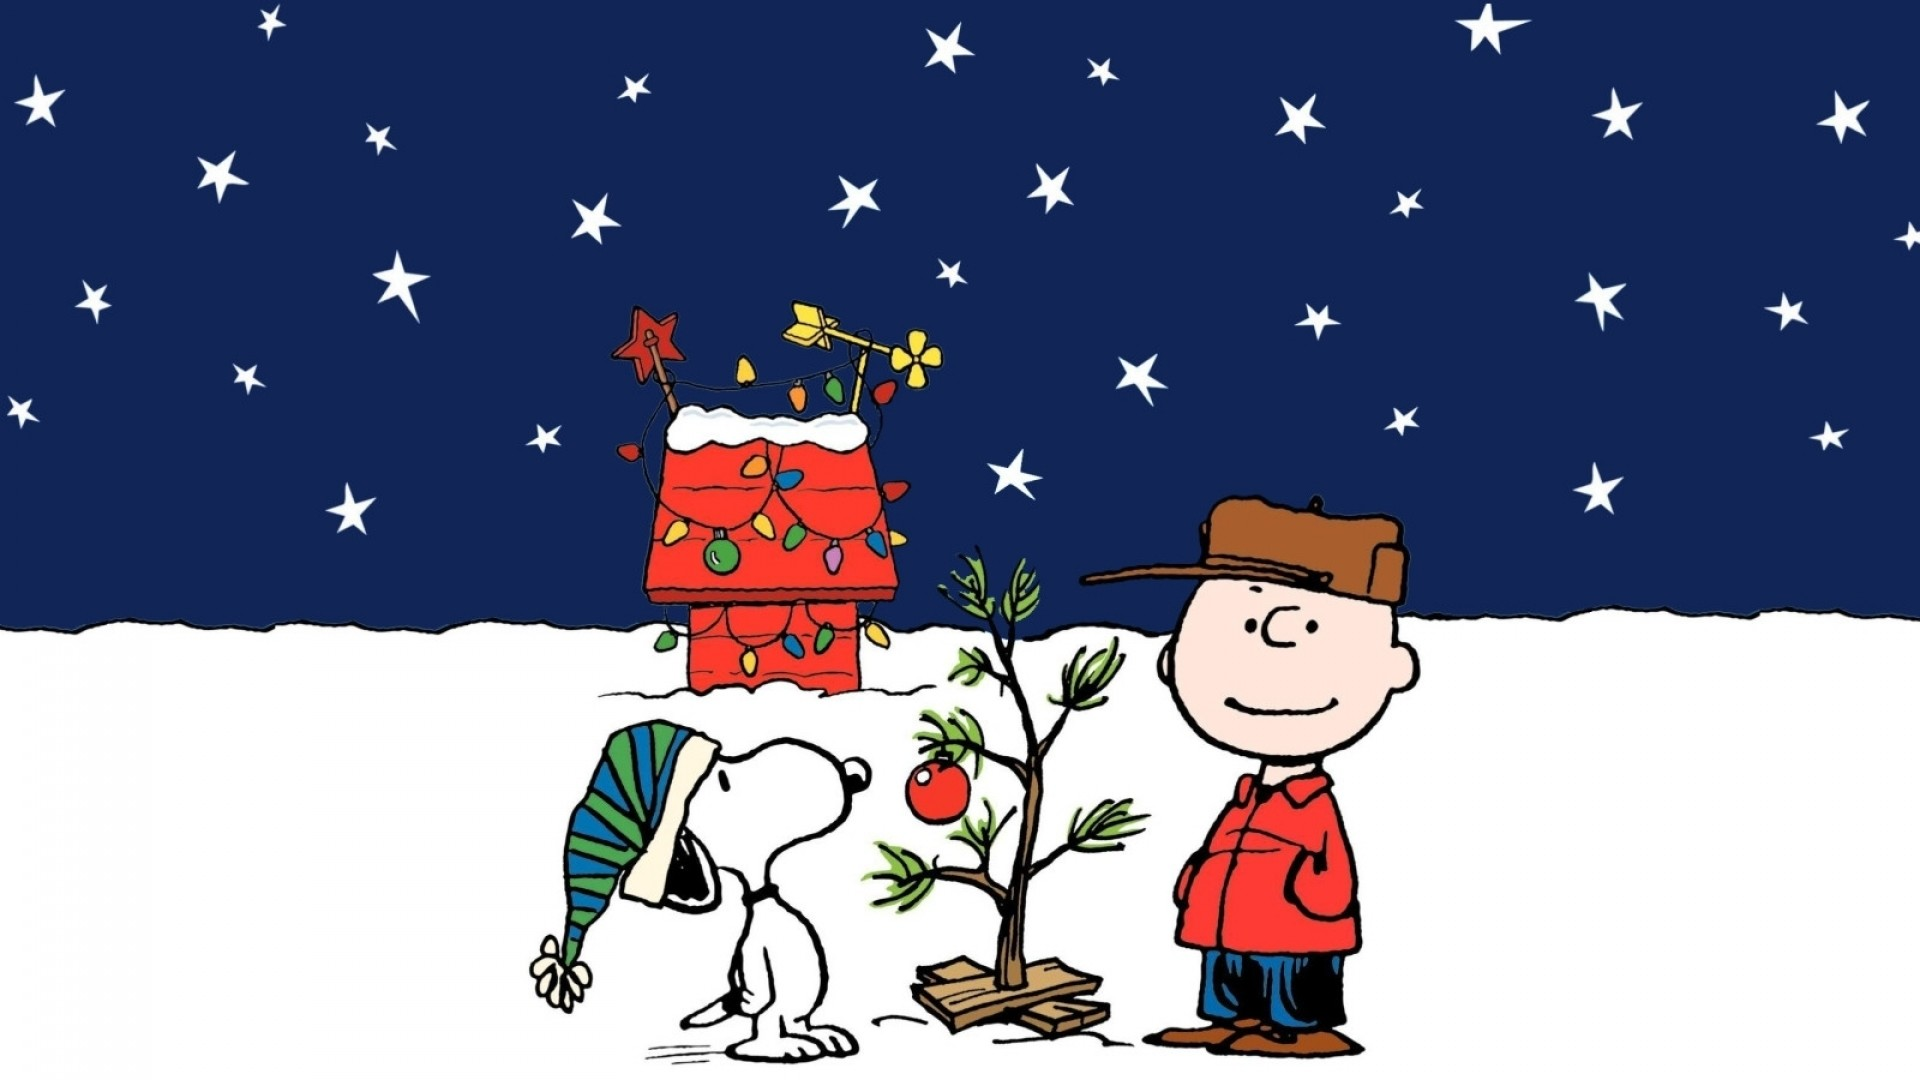 Charlie Brown Christmas Tree Wallpaper (50+ images)